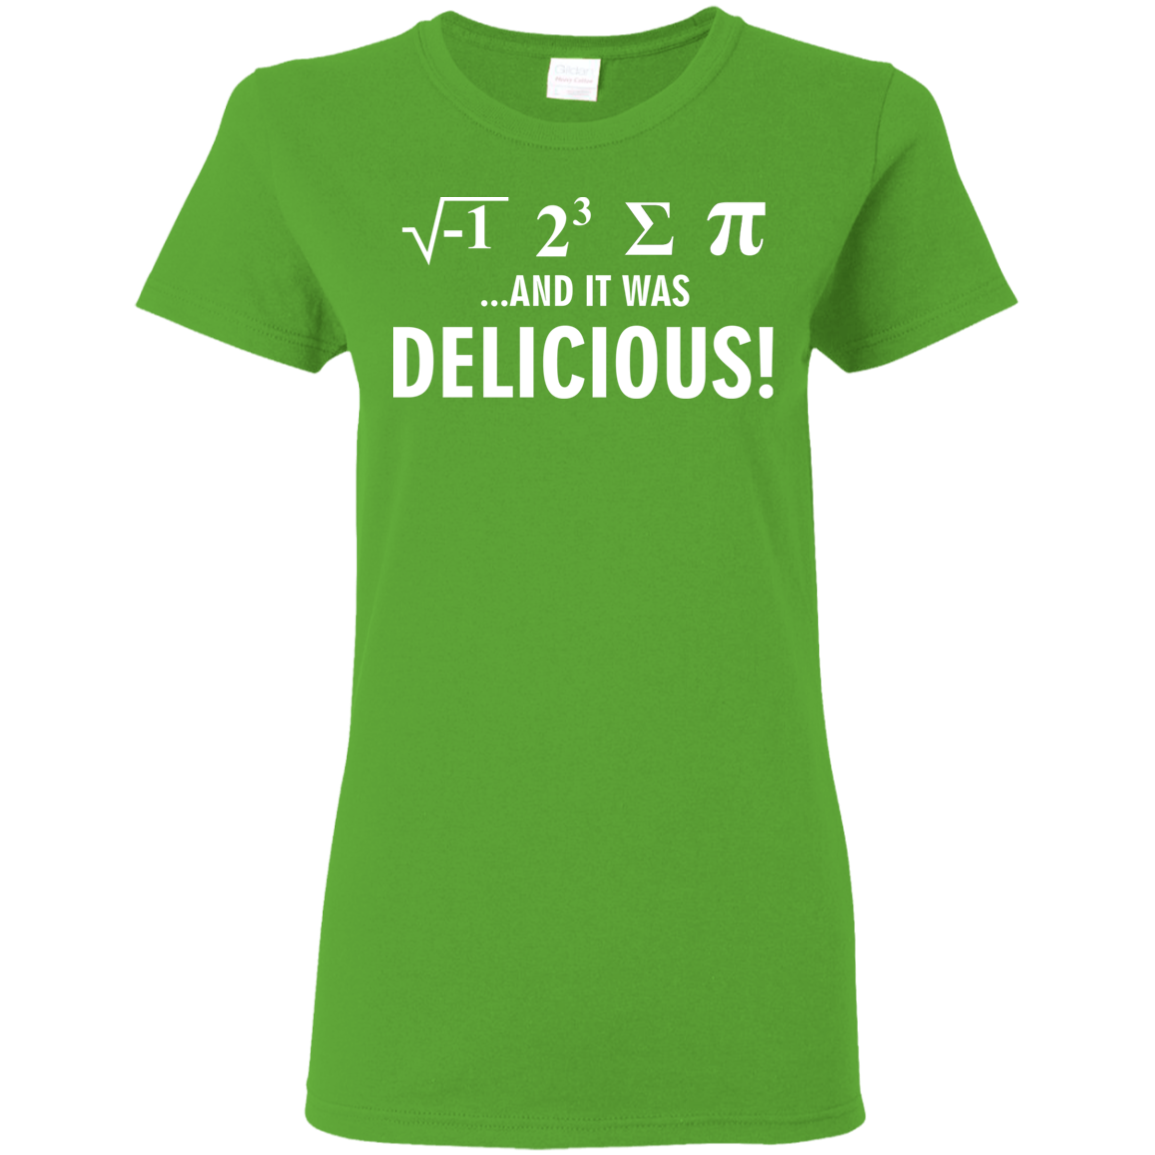 Delicious Ladies Shirt